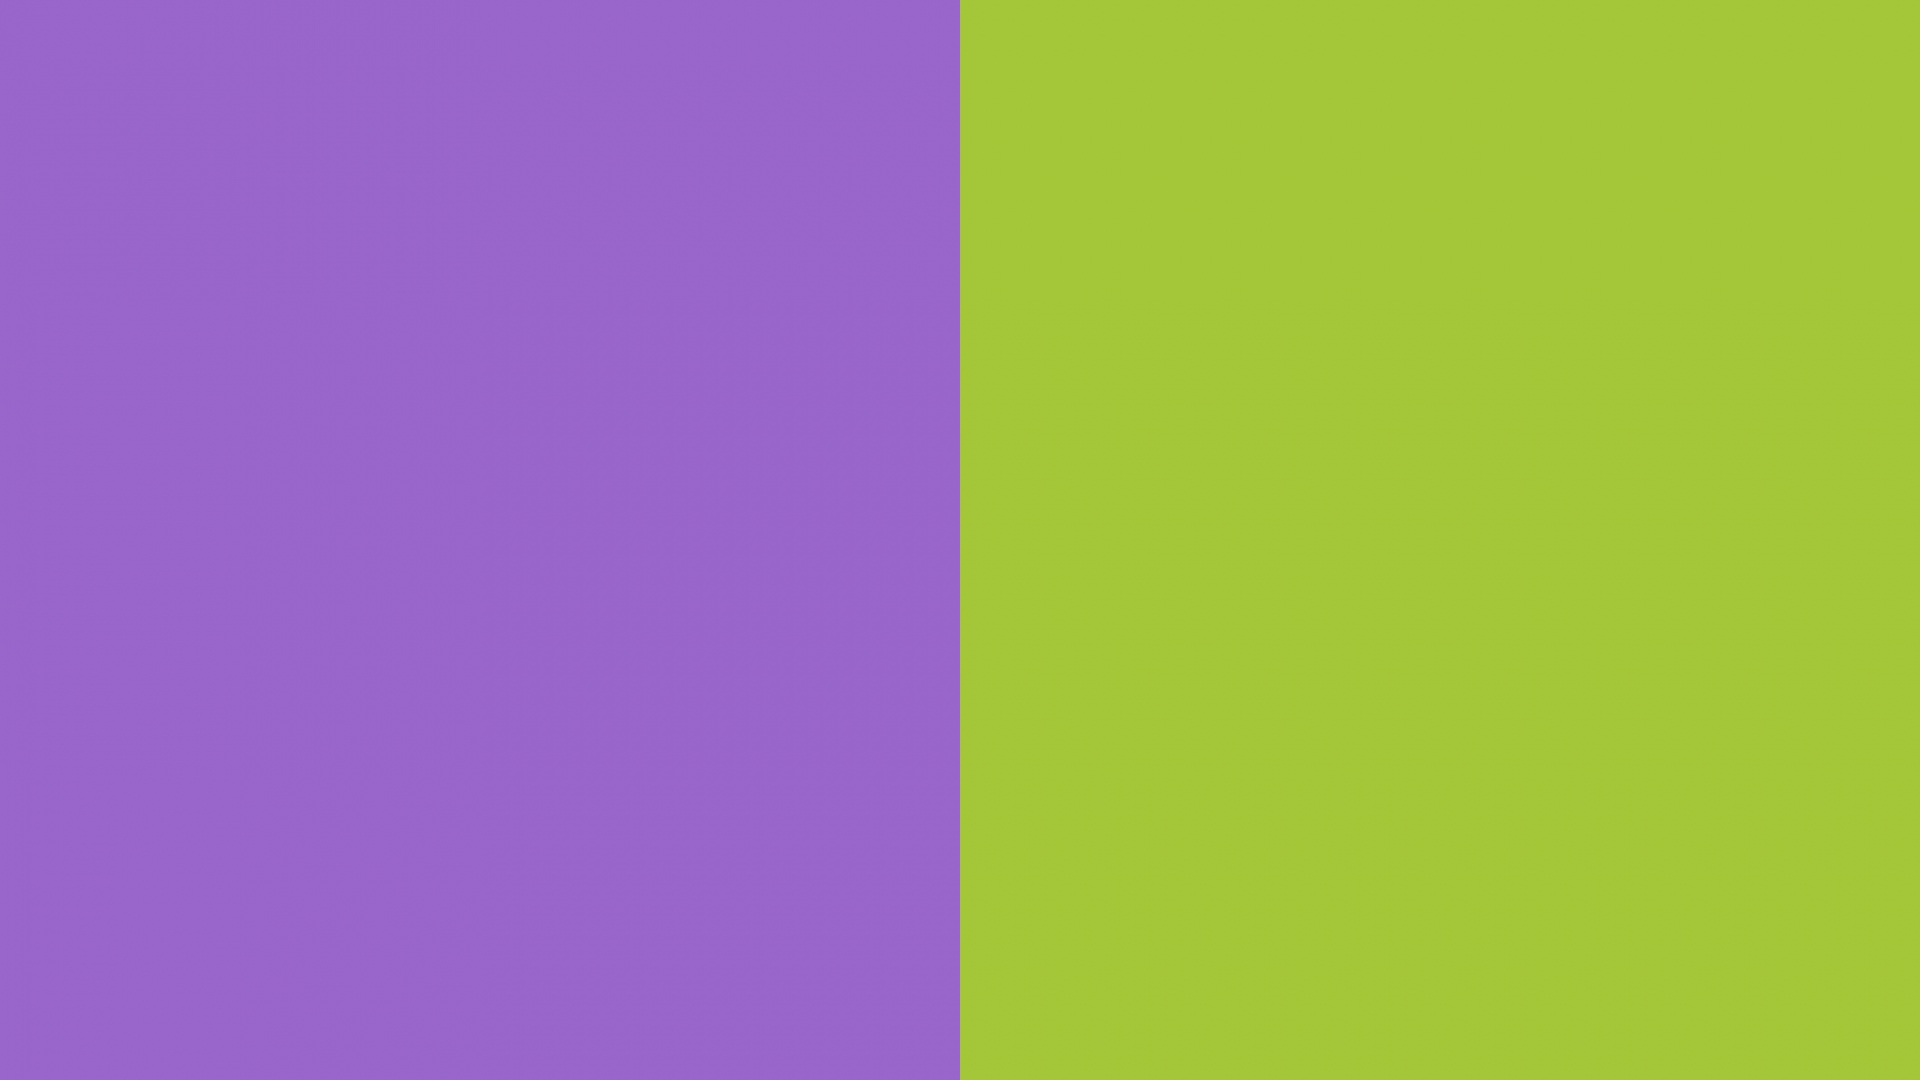 Free Download Amethyst Android Green Two Color Background